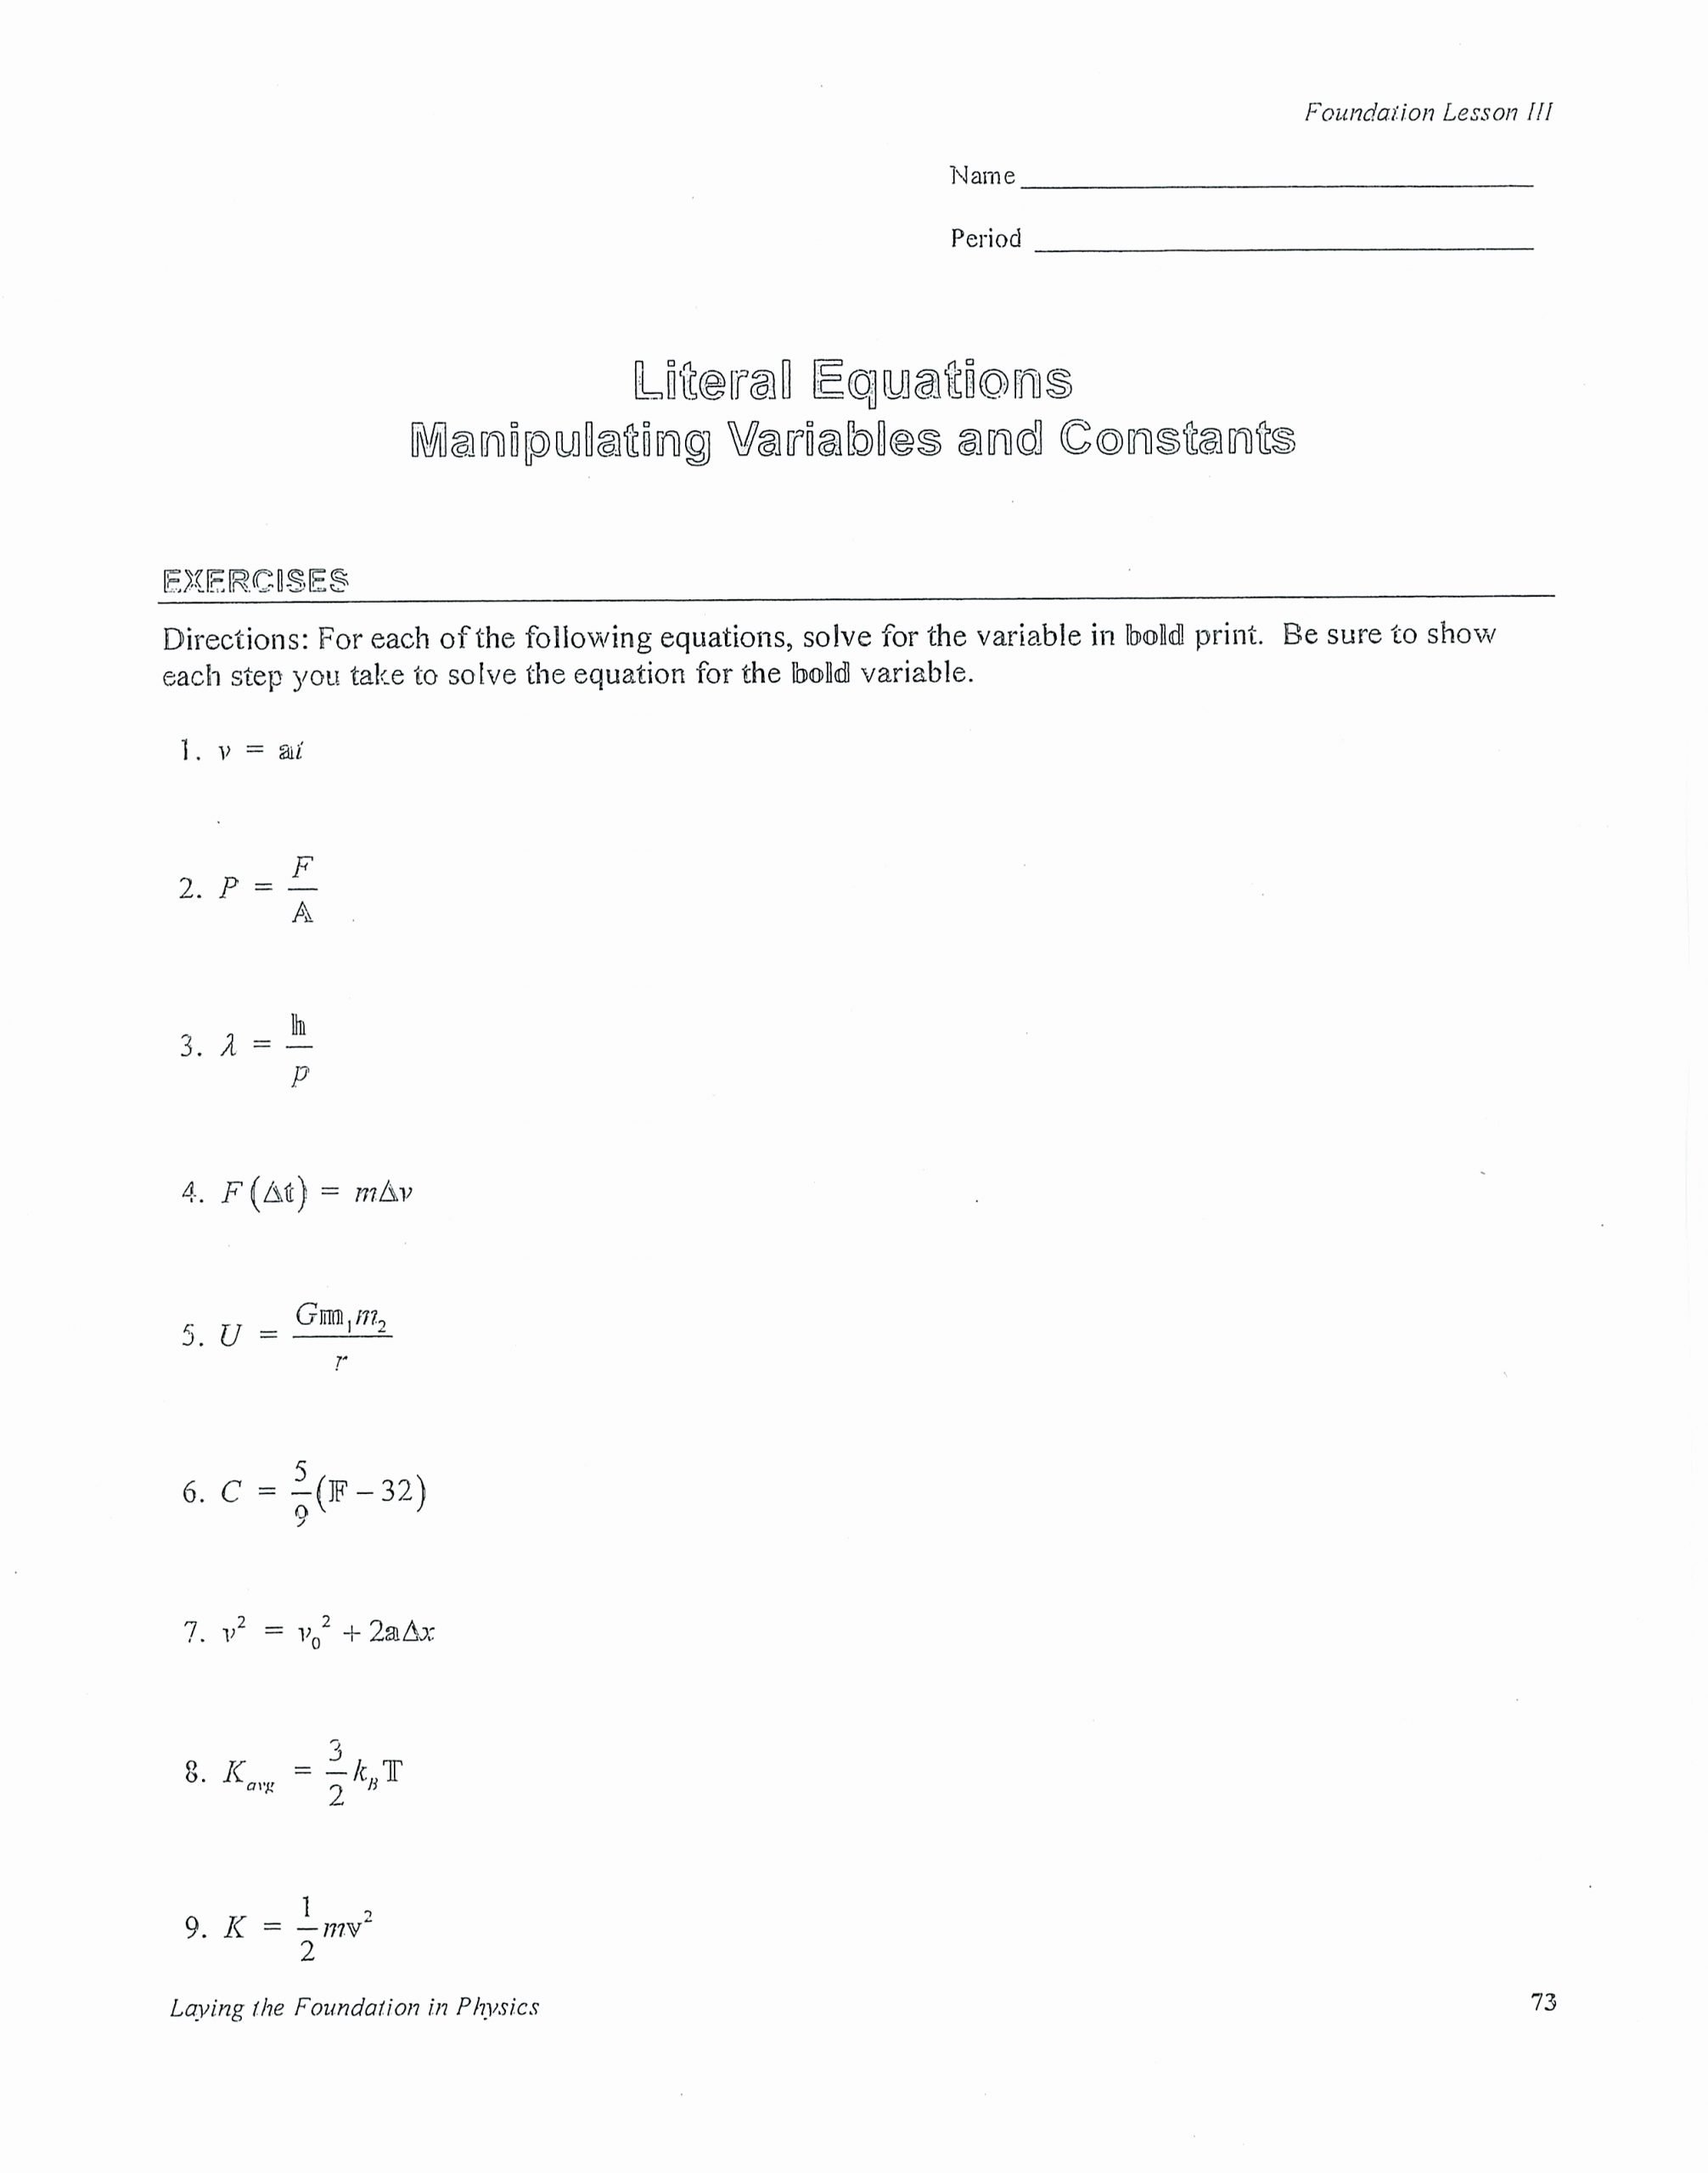 Literal Equations Worksheet Answer Key Lovely Literal Equations Worksheet